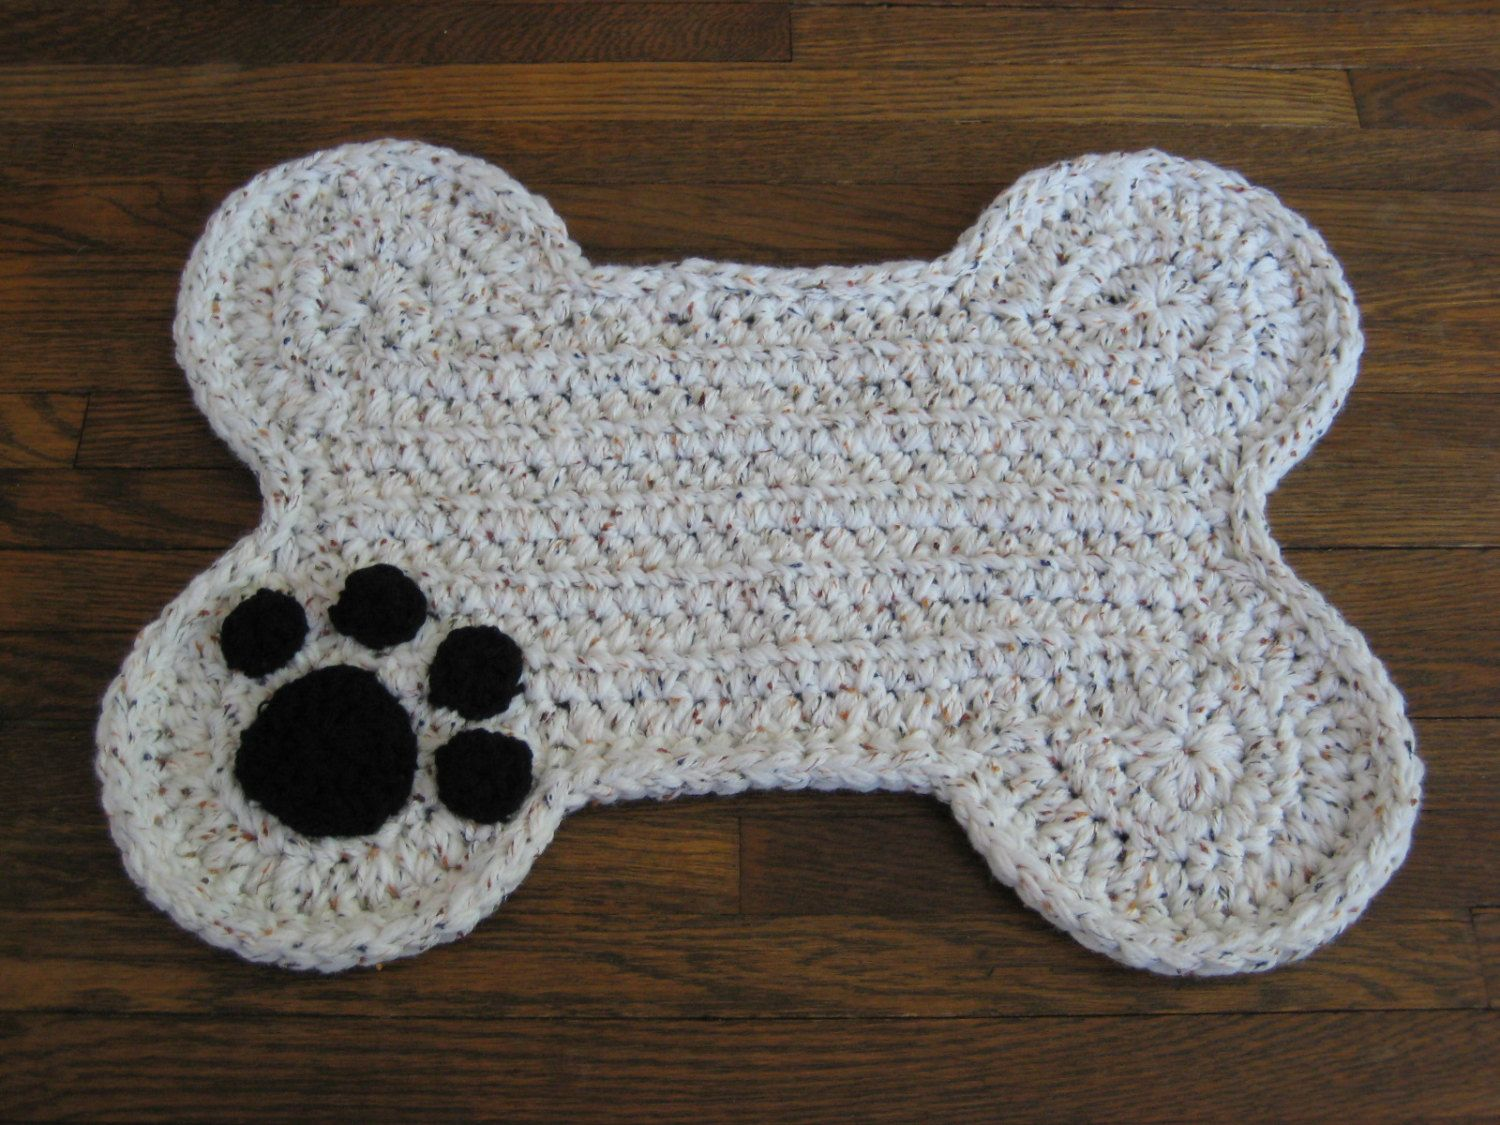 Free Crochet Pattern For Paw Print : Crochet Pattern Only for Dog Bone Floor Placemat by ...